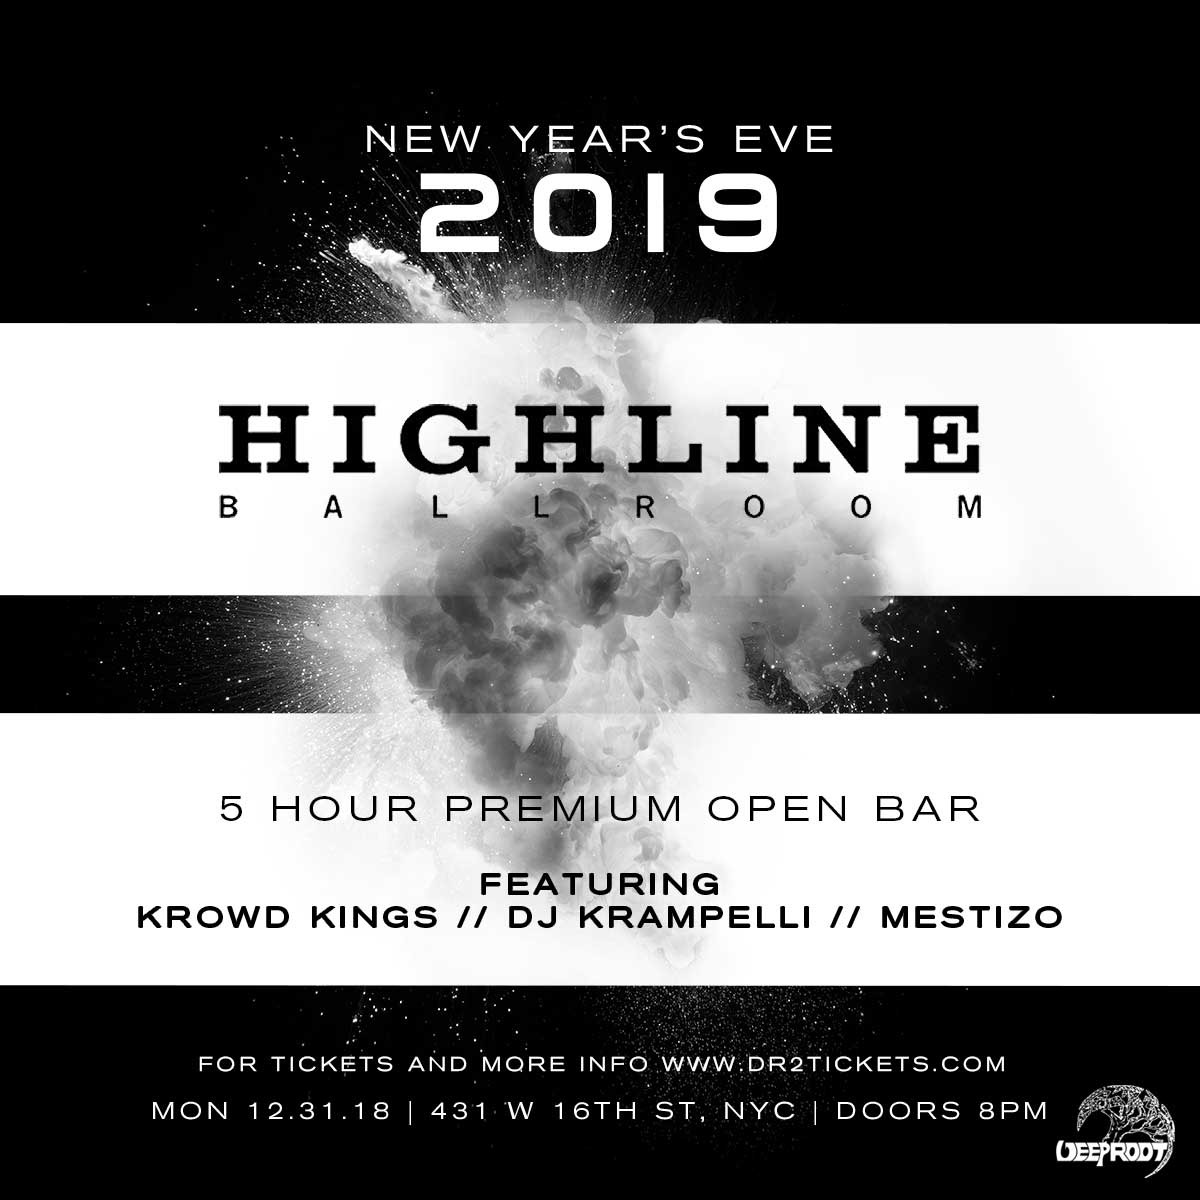 NYE 2019 At Highline Ballroom – 5 Hour Open Bar